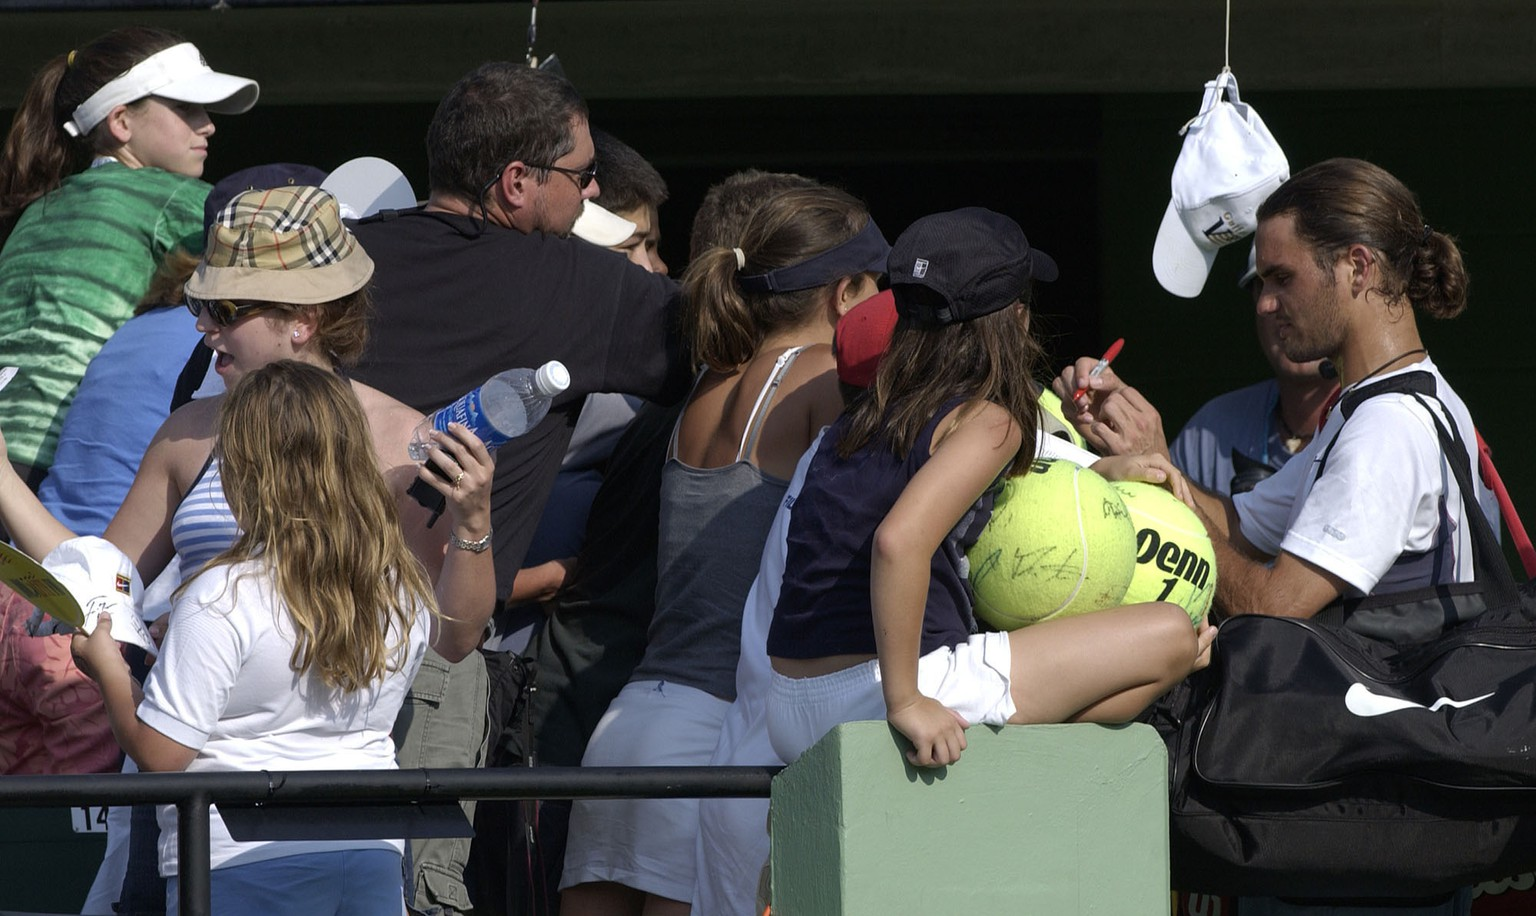 28 Mar 2002:  Roger Federer of Switzerland signs autographs after defeating Andrei Pavel of Romania during the Nasdaq-100 Open at The Tennis Center at Crandon Park in Miami, Florida. DIGITAL IMAGE Mandatory Credit: Clive Brunskill/Getty Images